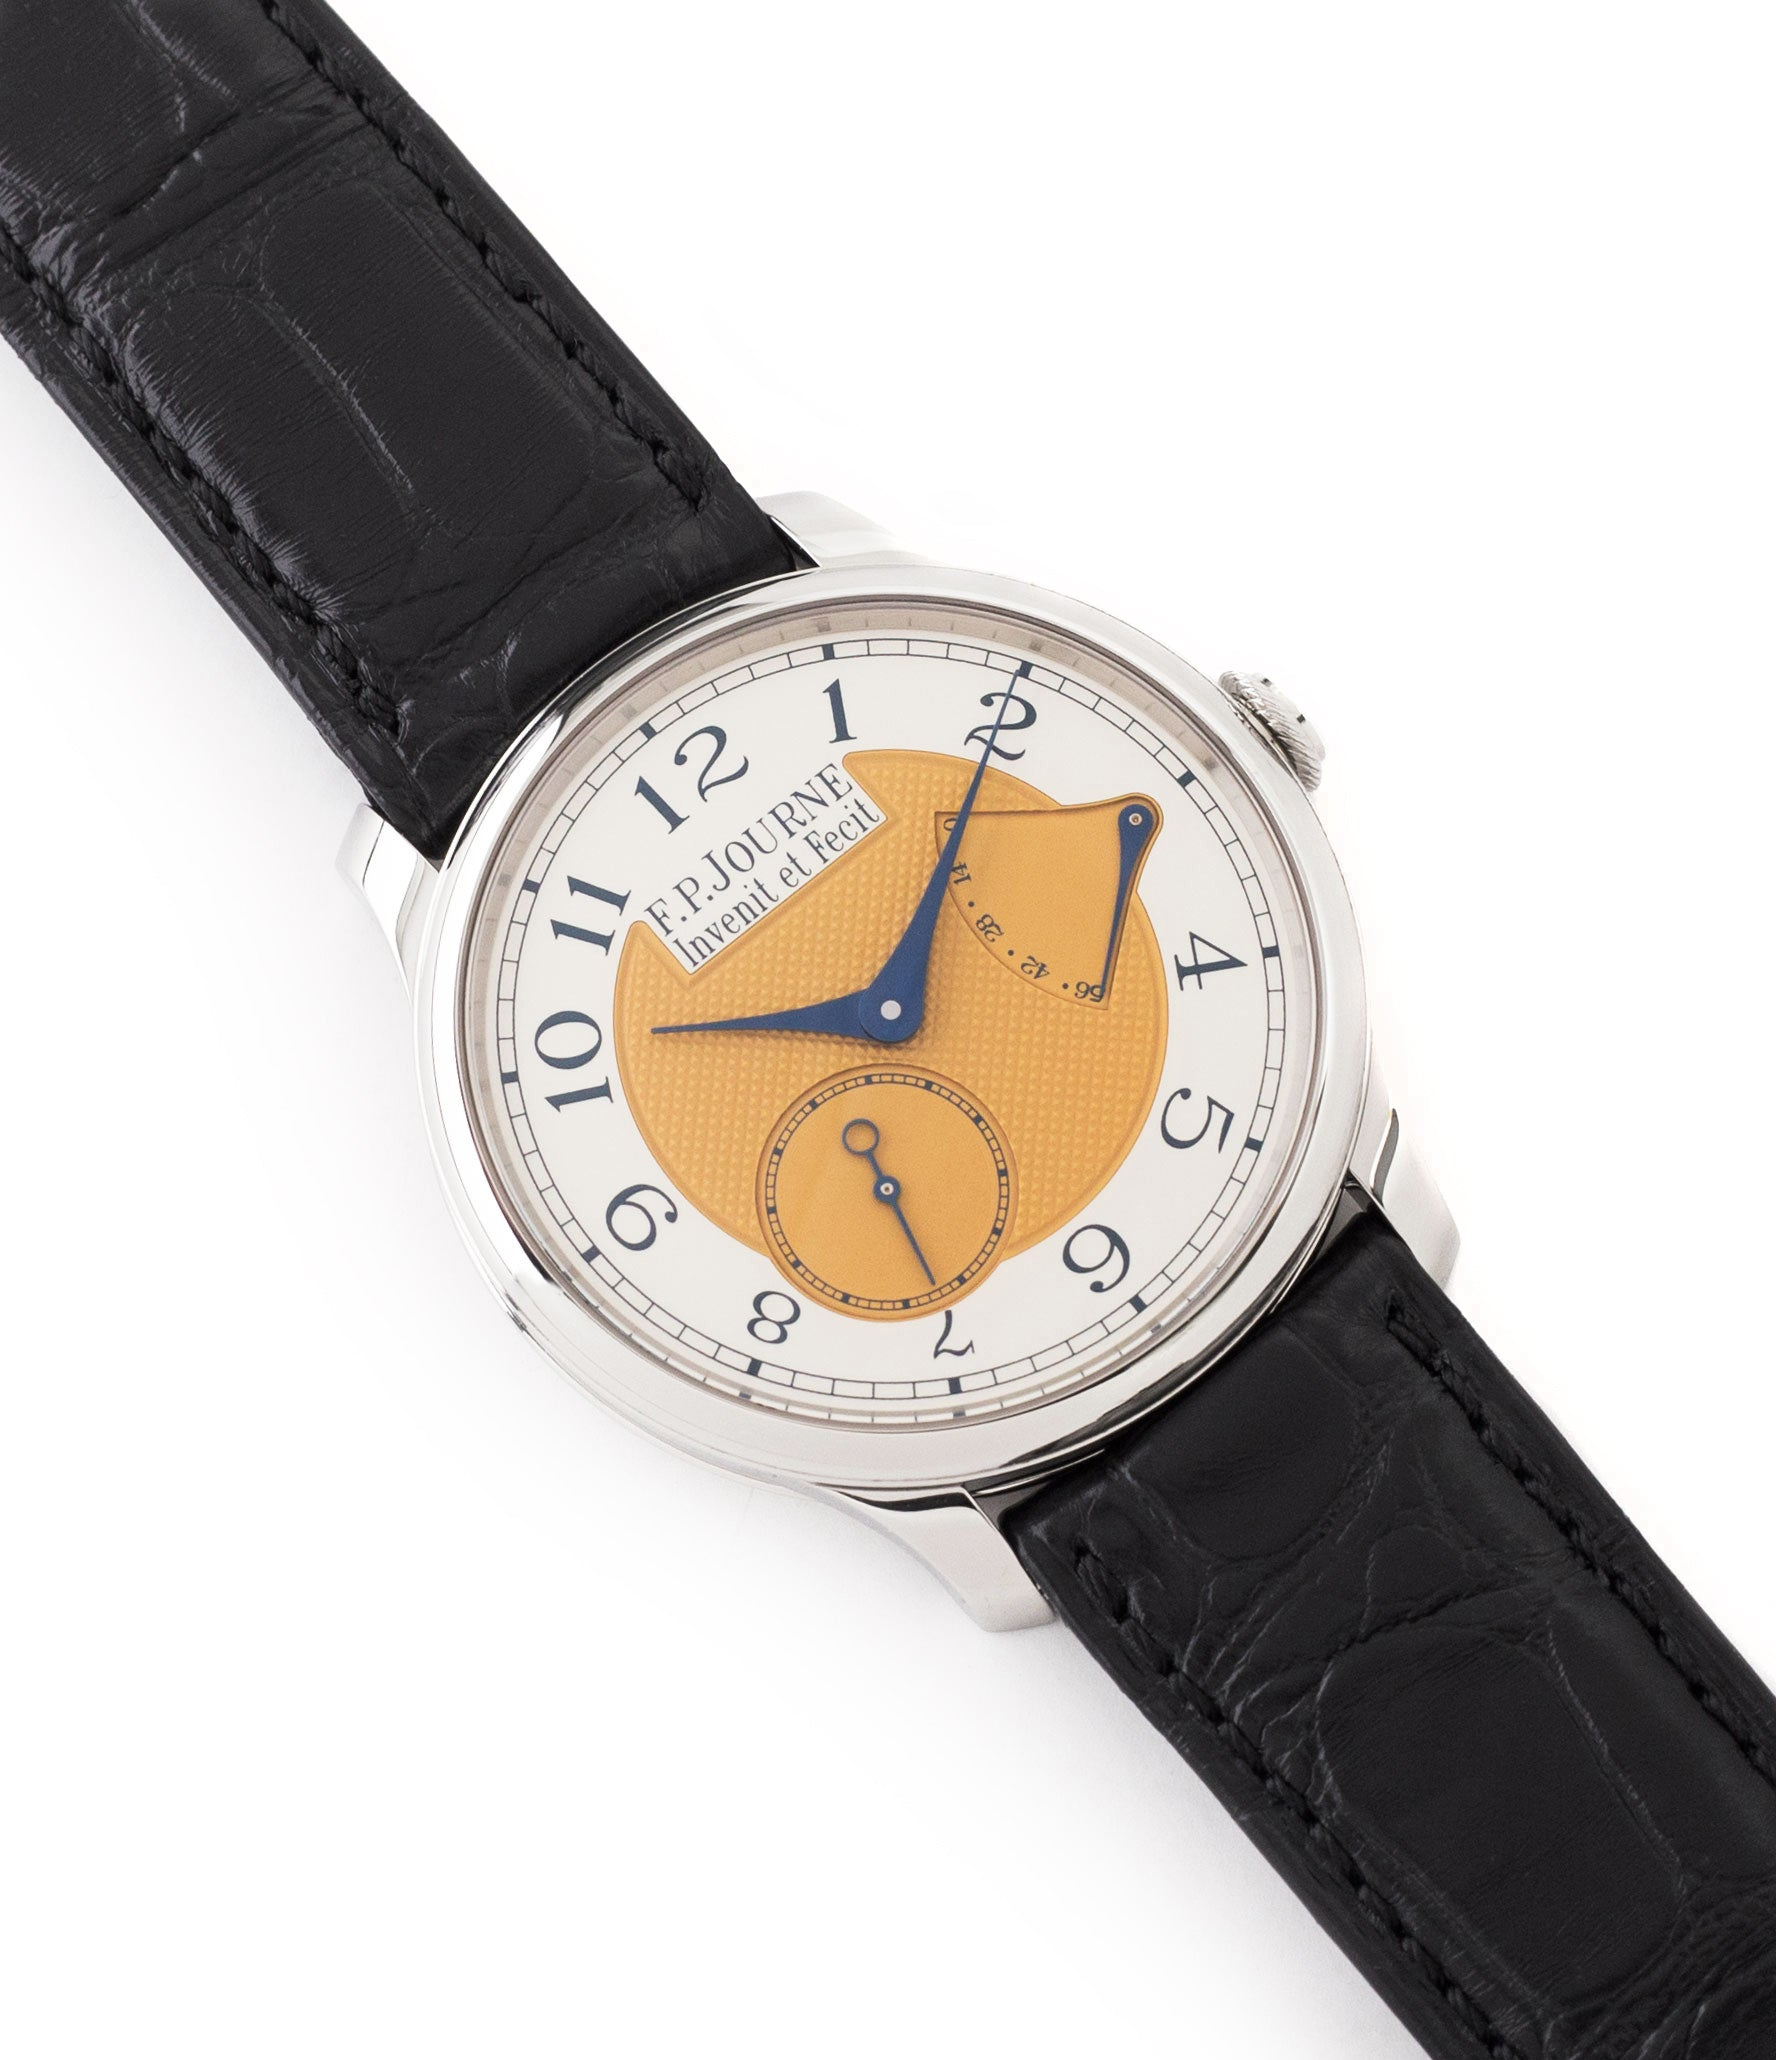 for sale F. P. Journe Chronomètre Souverain Steel 38 mm Limited Edition Set for sale online at A Collected Man London approved UK retailer independent watchmakers